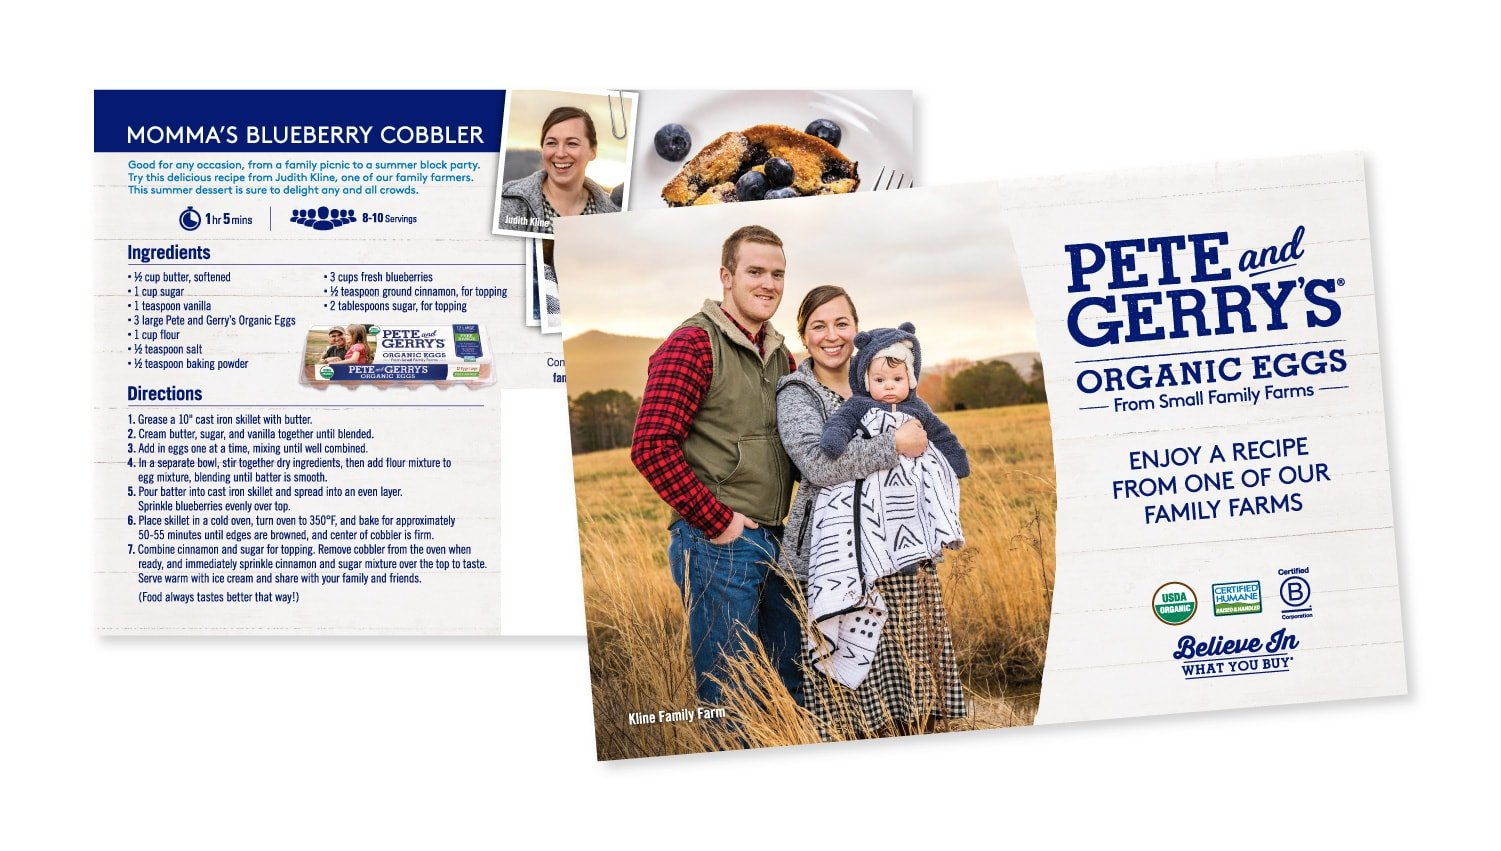 Pete & Gerry's Direct Mail